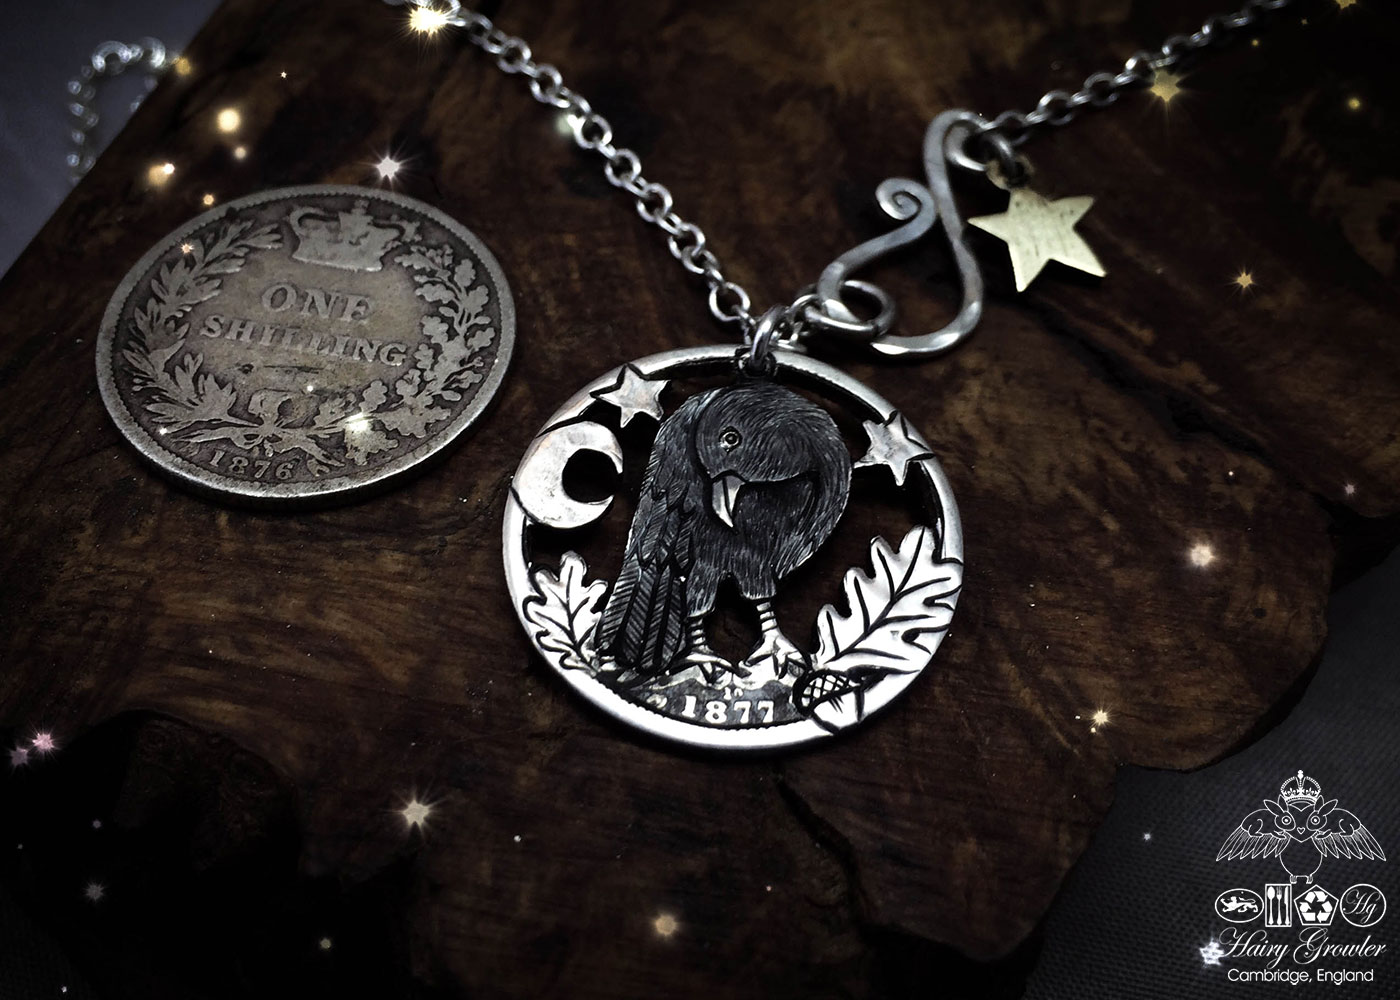 Handmade and repurposed silver shilling curious raven necklace totally handcrafted and recycled from old sterling silver shilling coins. Designed and created by Hairy Growler Jewellery, Cambridge, UK